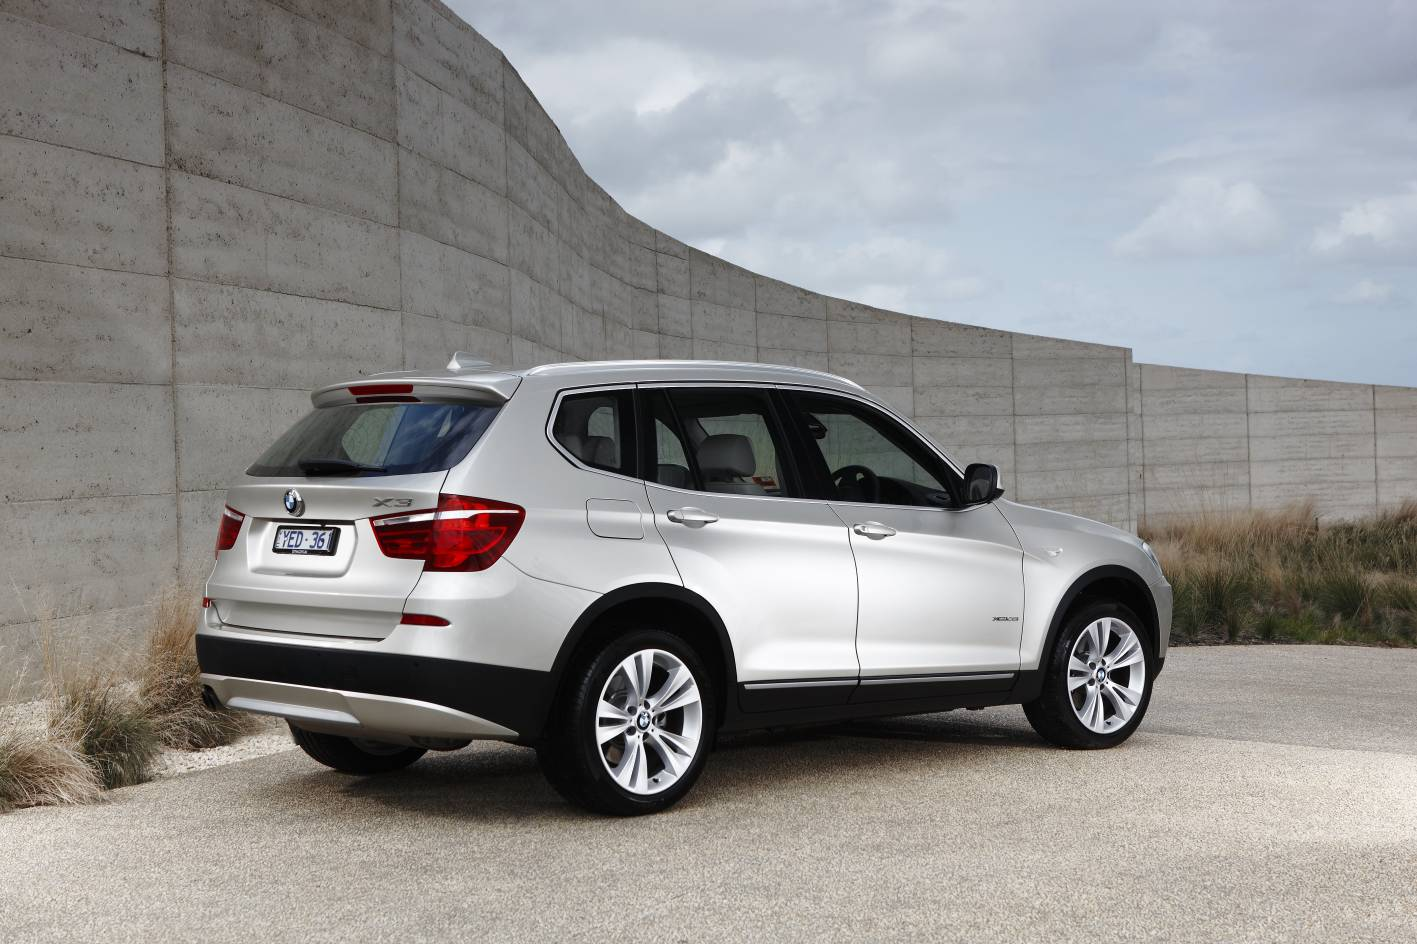 bmw x3 review photos caradvice. Black Bedroom Furniture Sets. Home Design Ideas